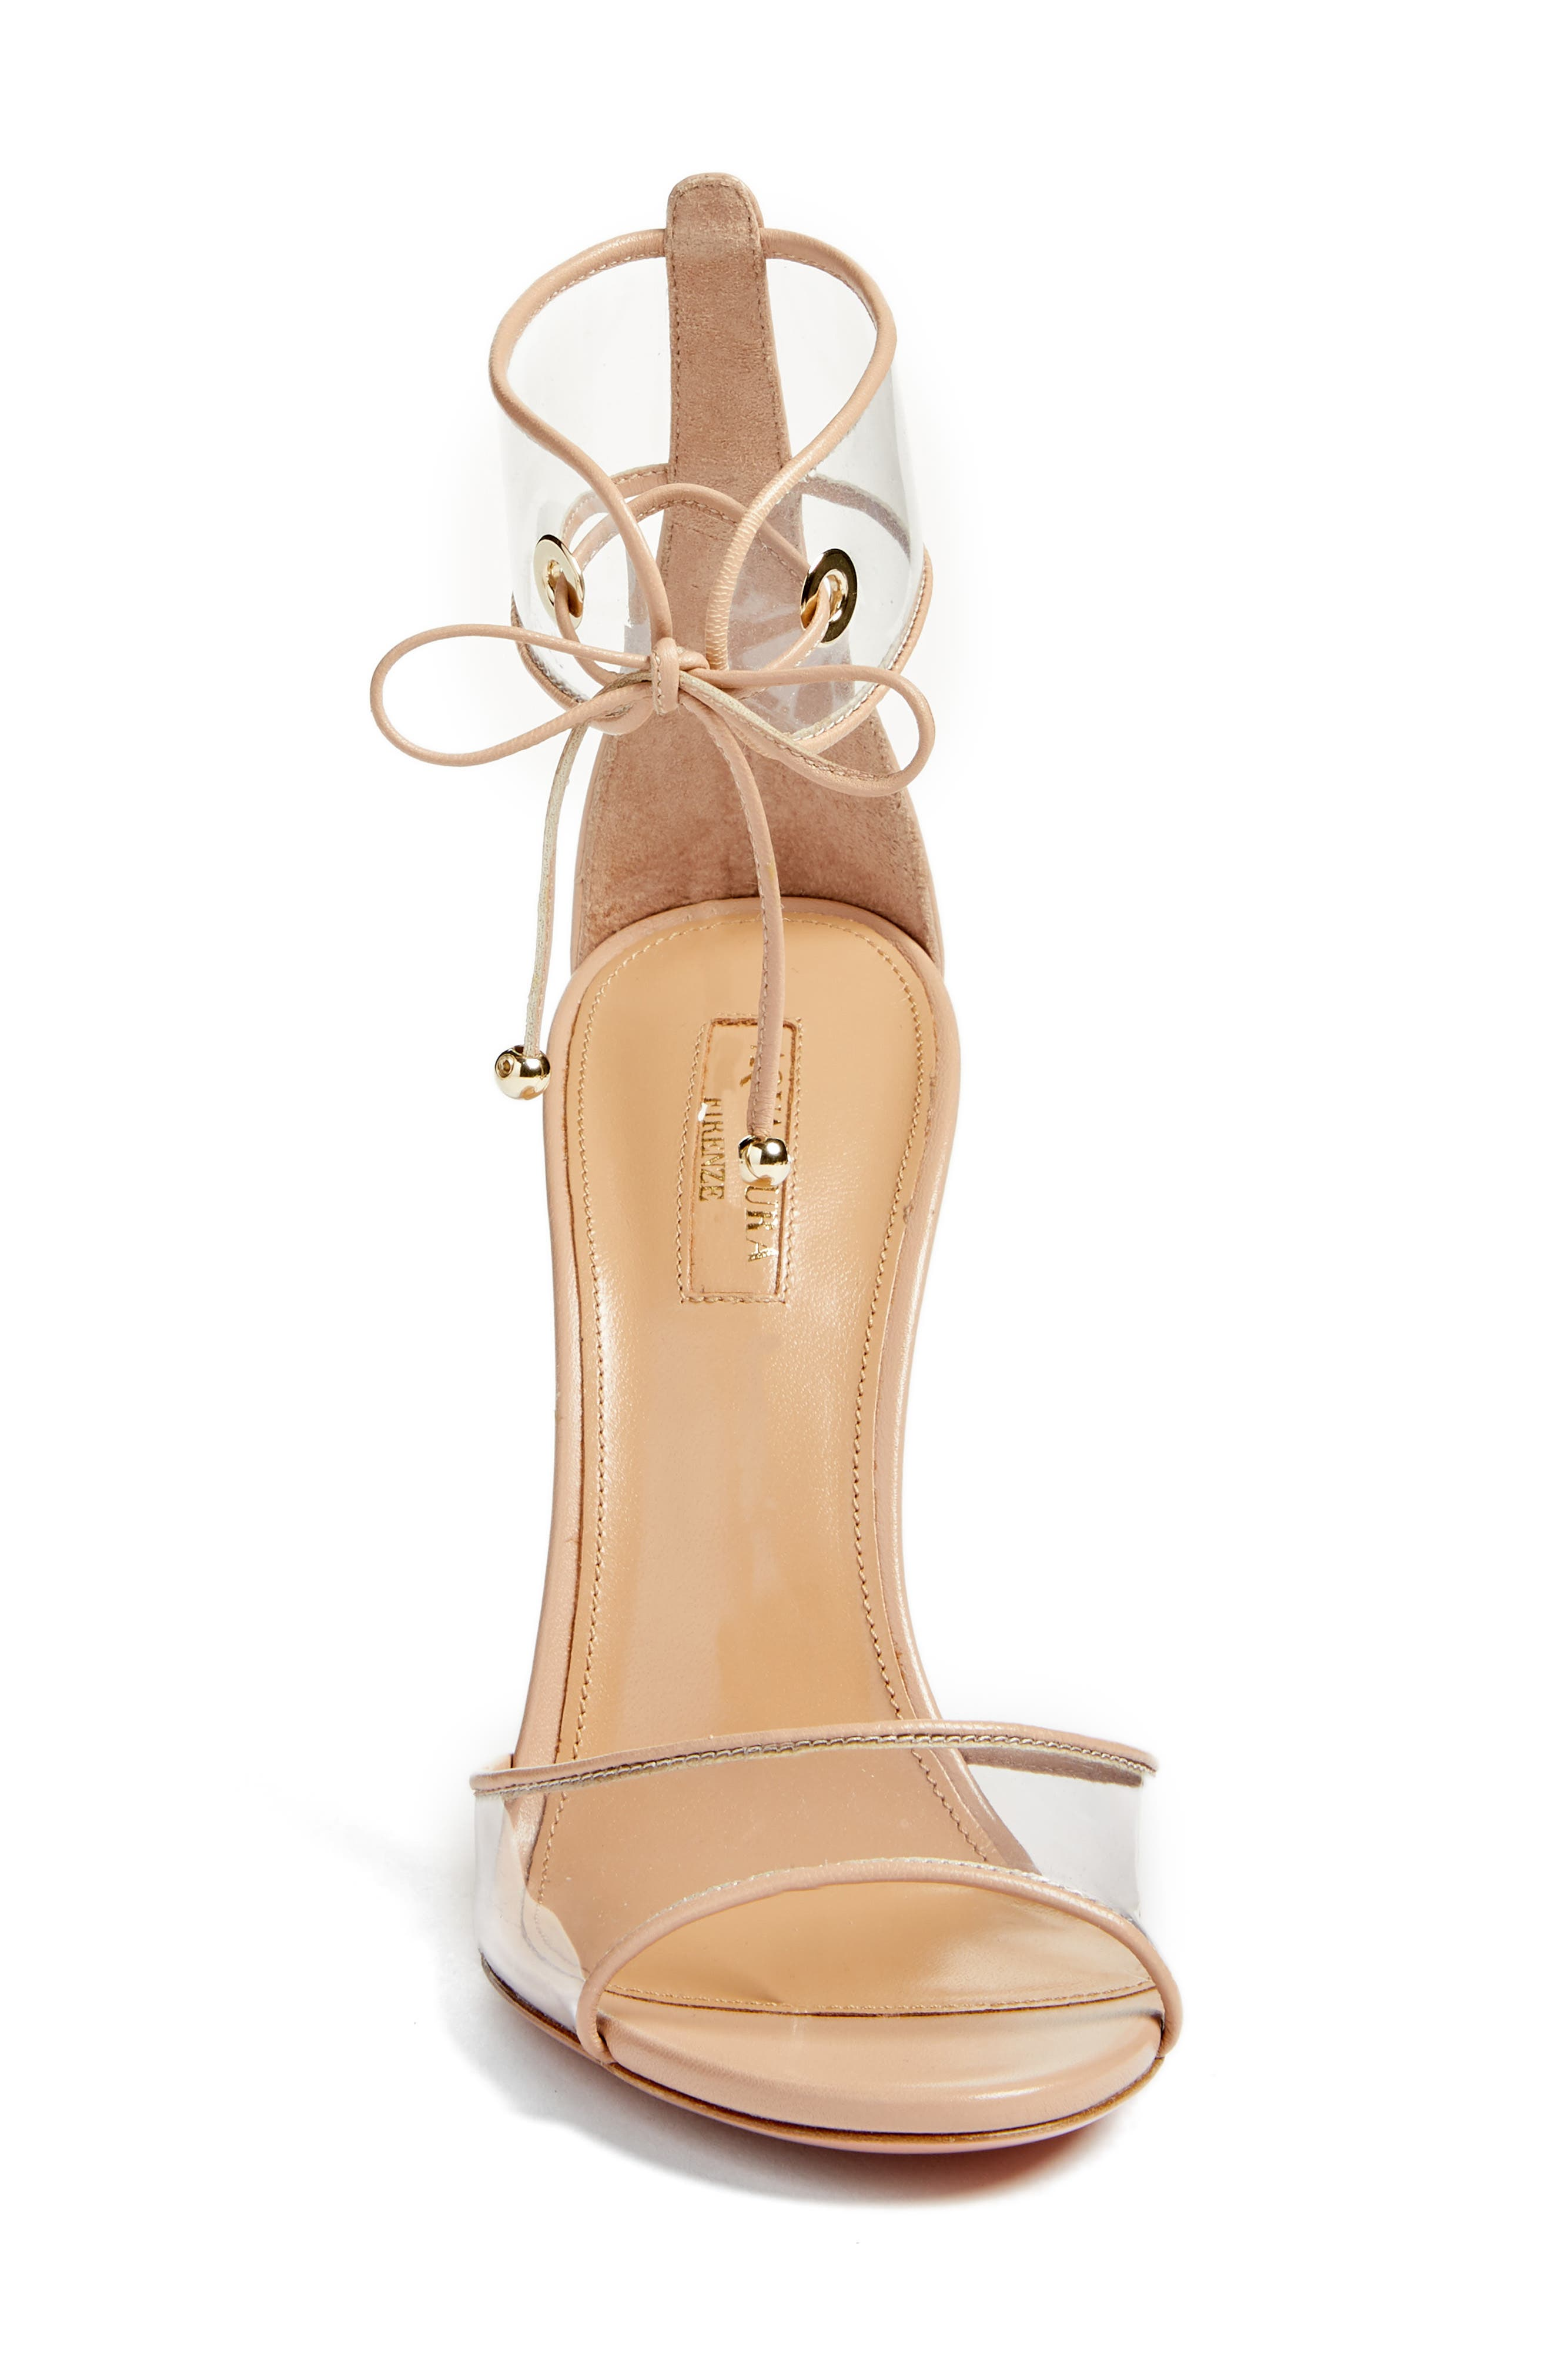 Optic Clear Ankle Tie Sandal,                             Alternate thumbnail 4, color,                             Powder Pink